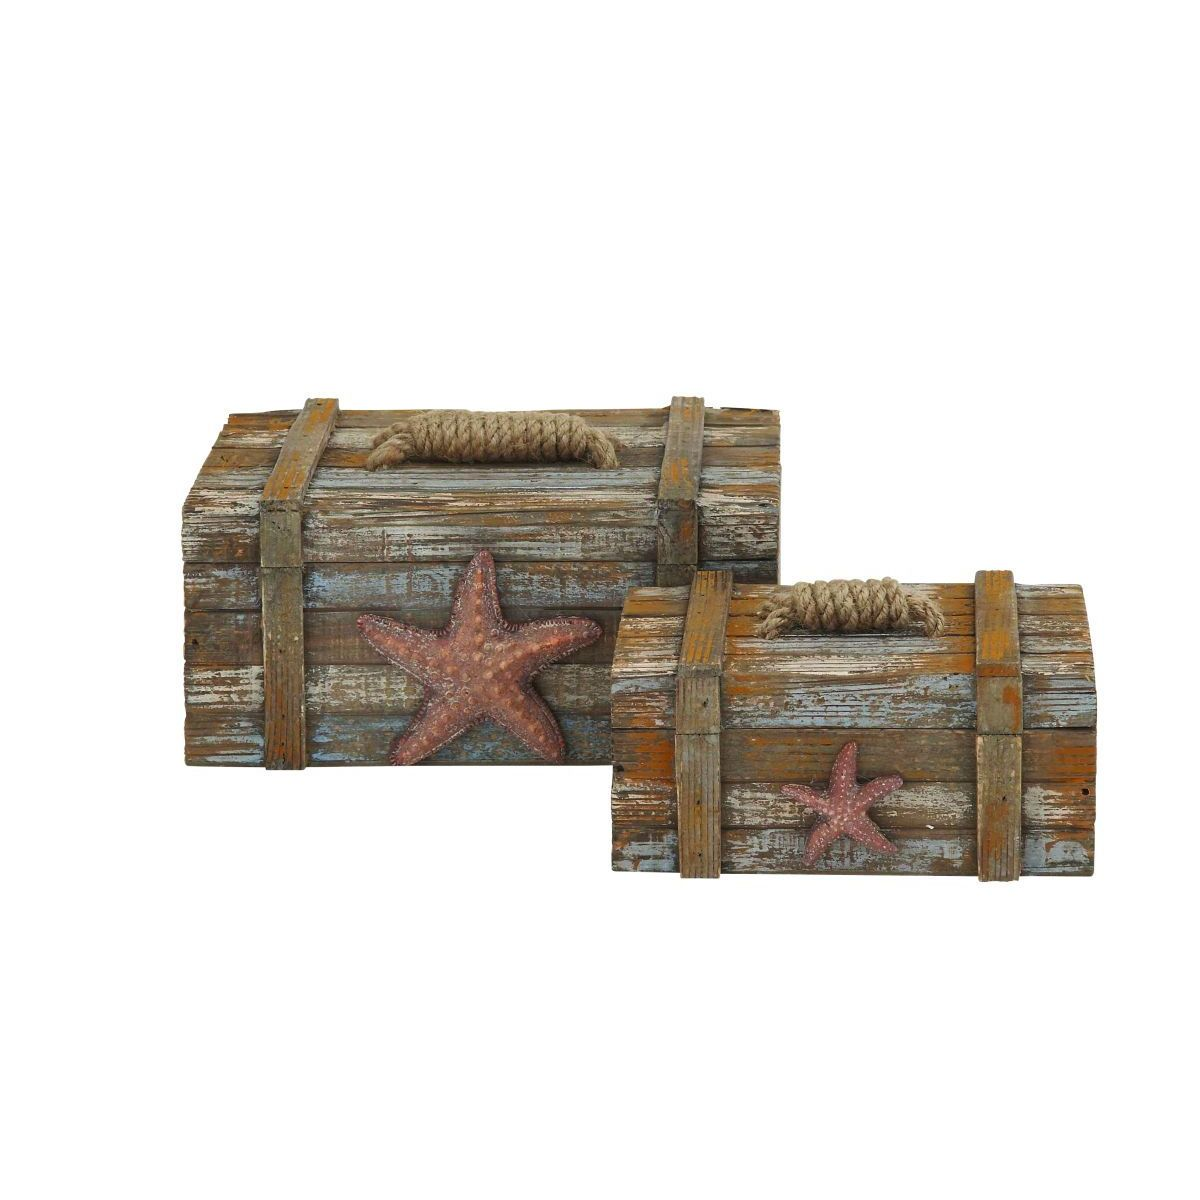 Faux Rustic Nautical-themed Storage Boxes with Jute Rope Accents  sc 1 st  Overstock.com & Shop Faux Rustic Nautical-themed Storage Boxes with Jute Rope ...